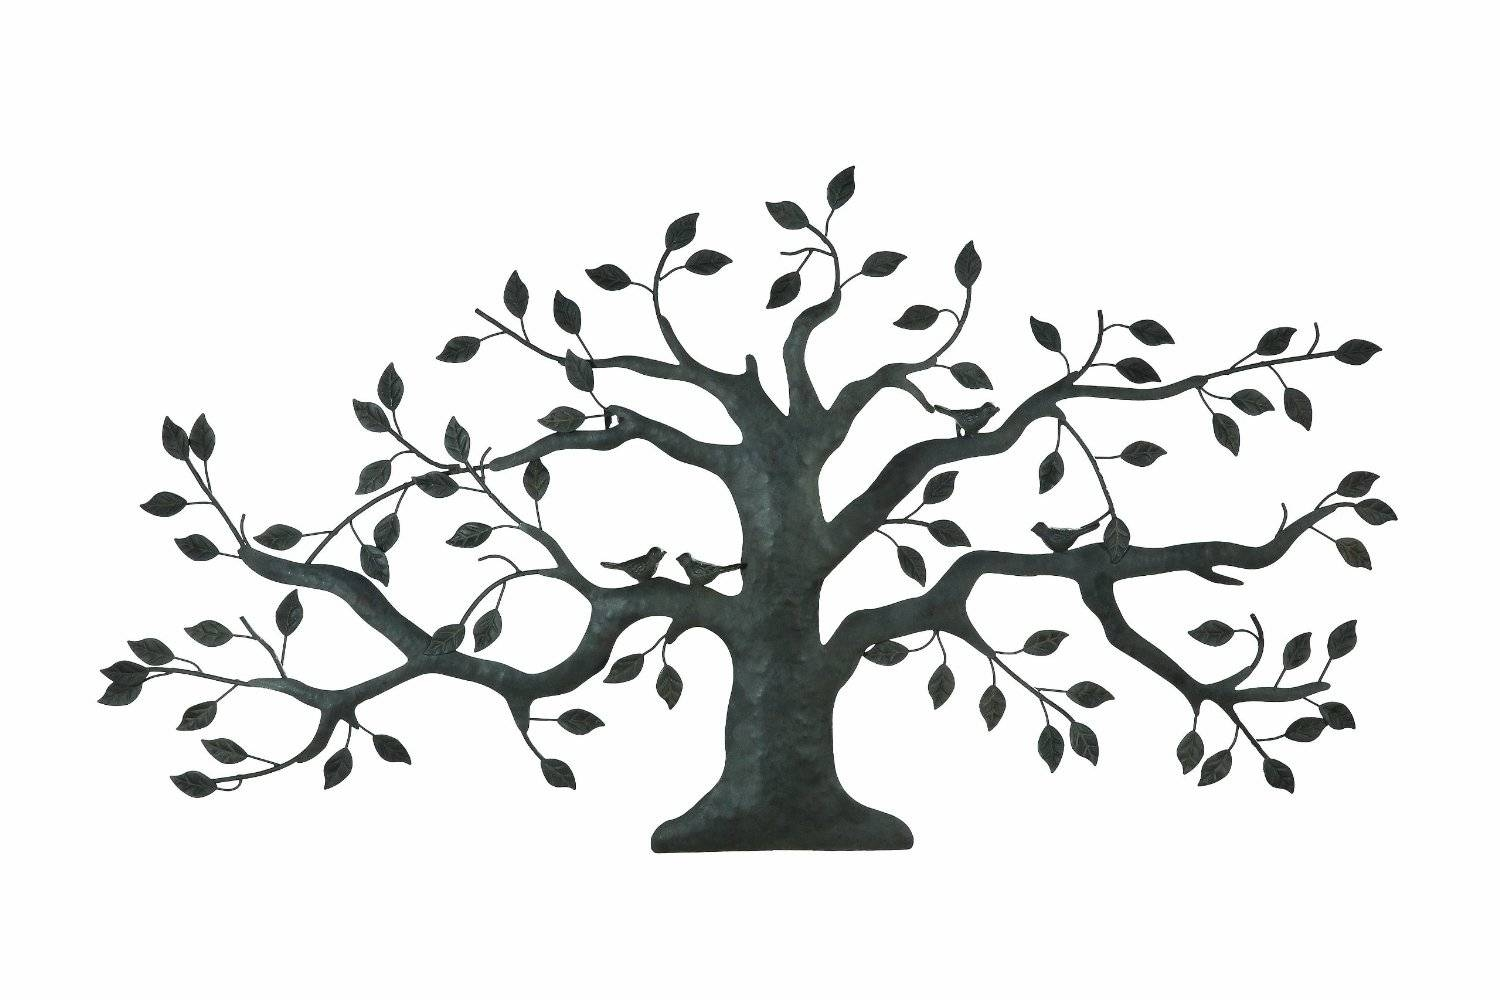 Stupendous Tree Of Life Metal Wall Art Decor Sculpture 31 X 29 For Most Recent Metal Tree Wall Art Sculpture (View 12 of 20)